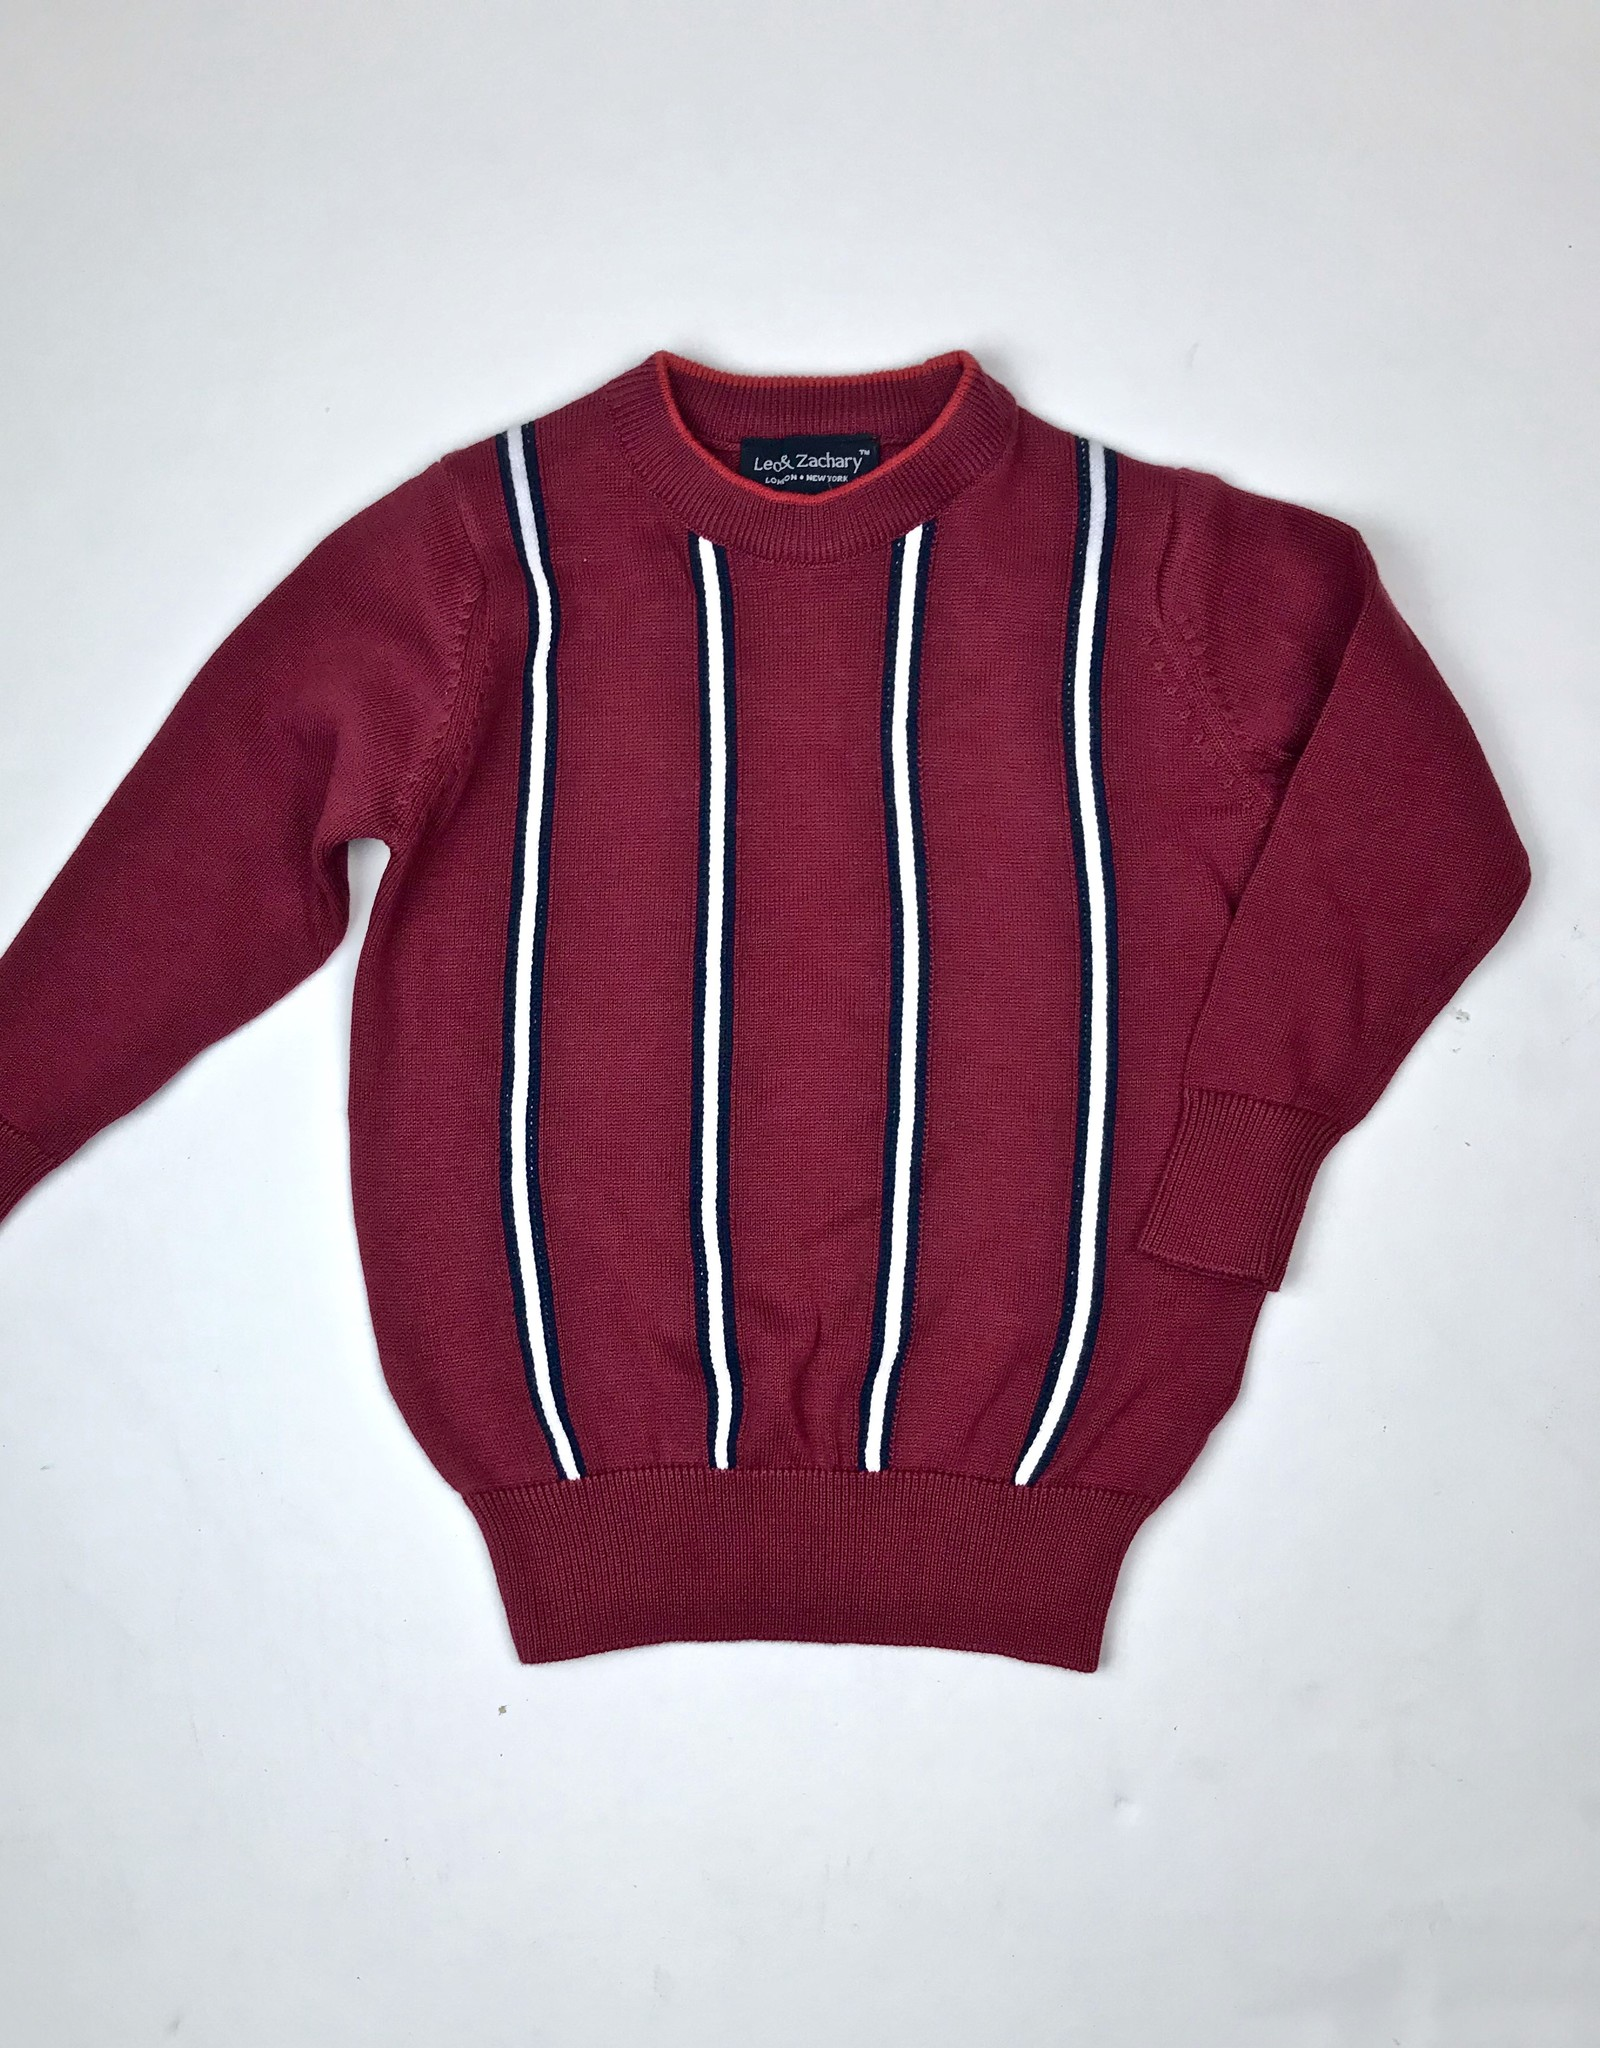 Leo and Zachary Red Vertical Stripe Crew Sweater